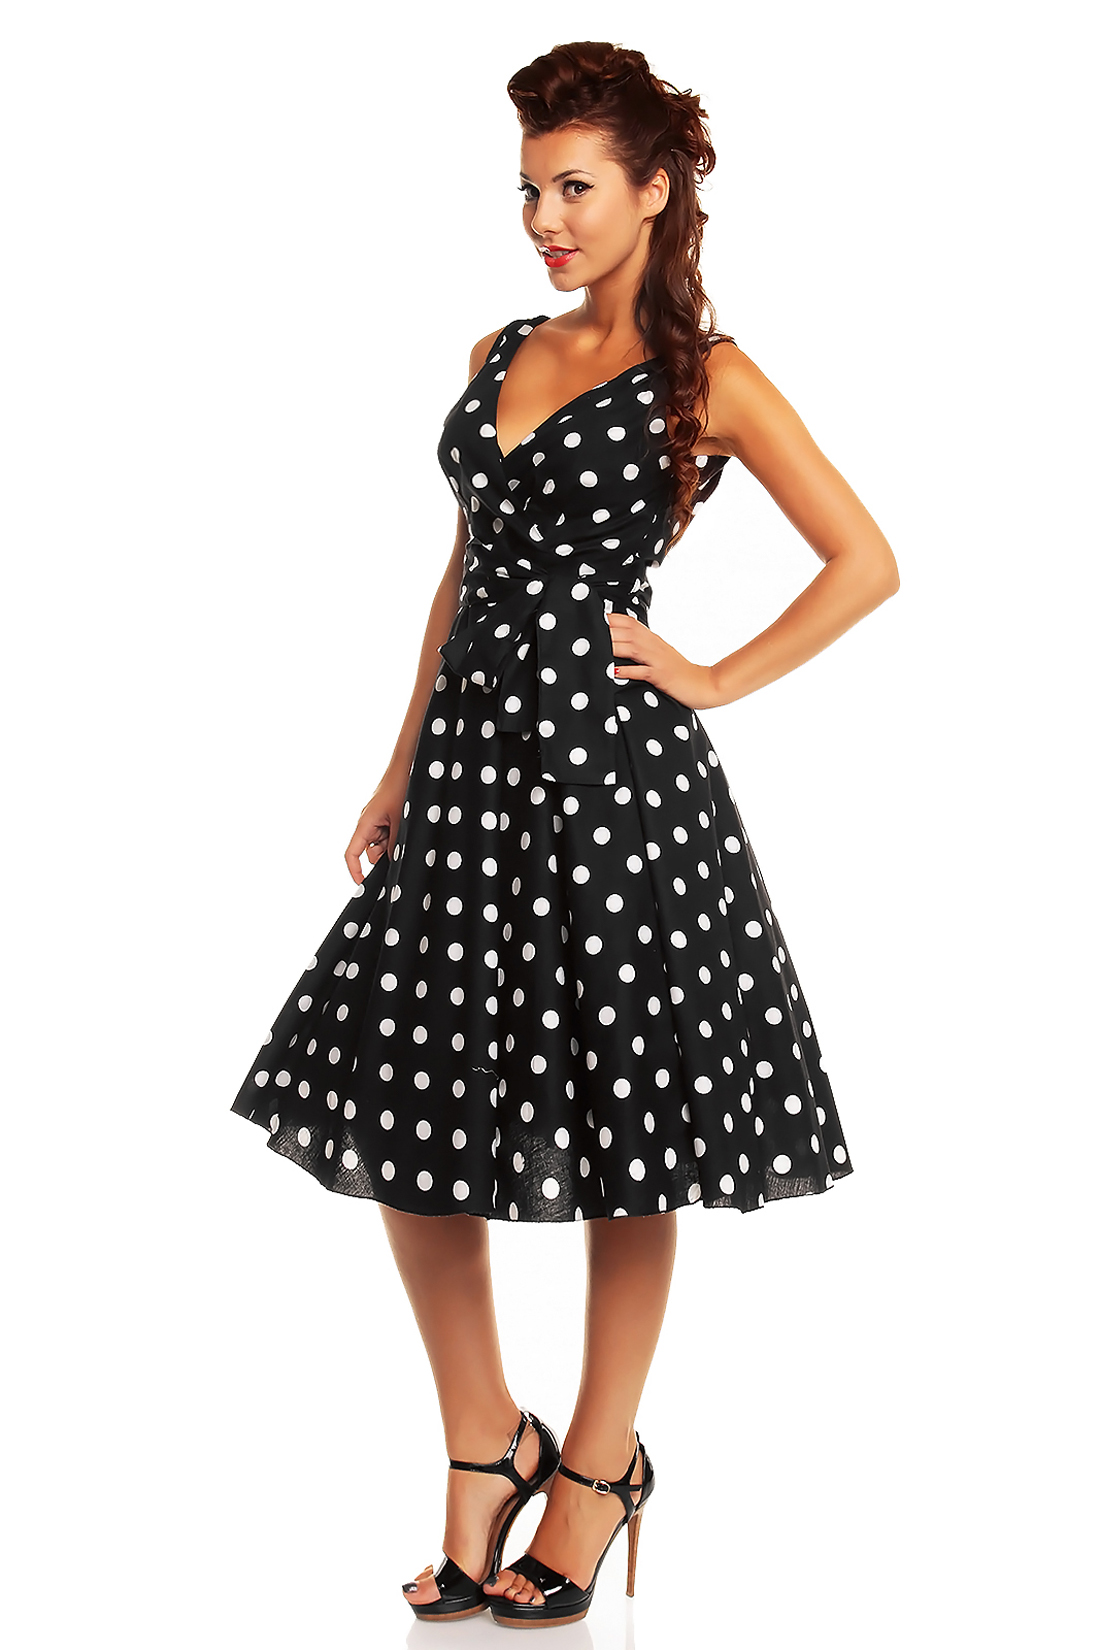 Plus Size Rockabilly Dresses Uk 25